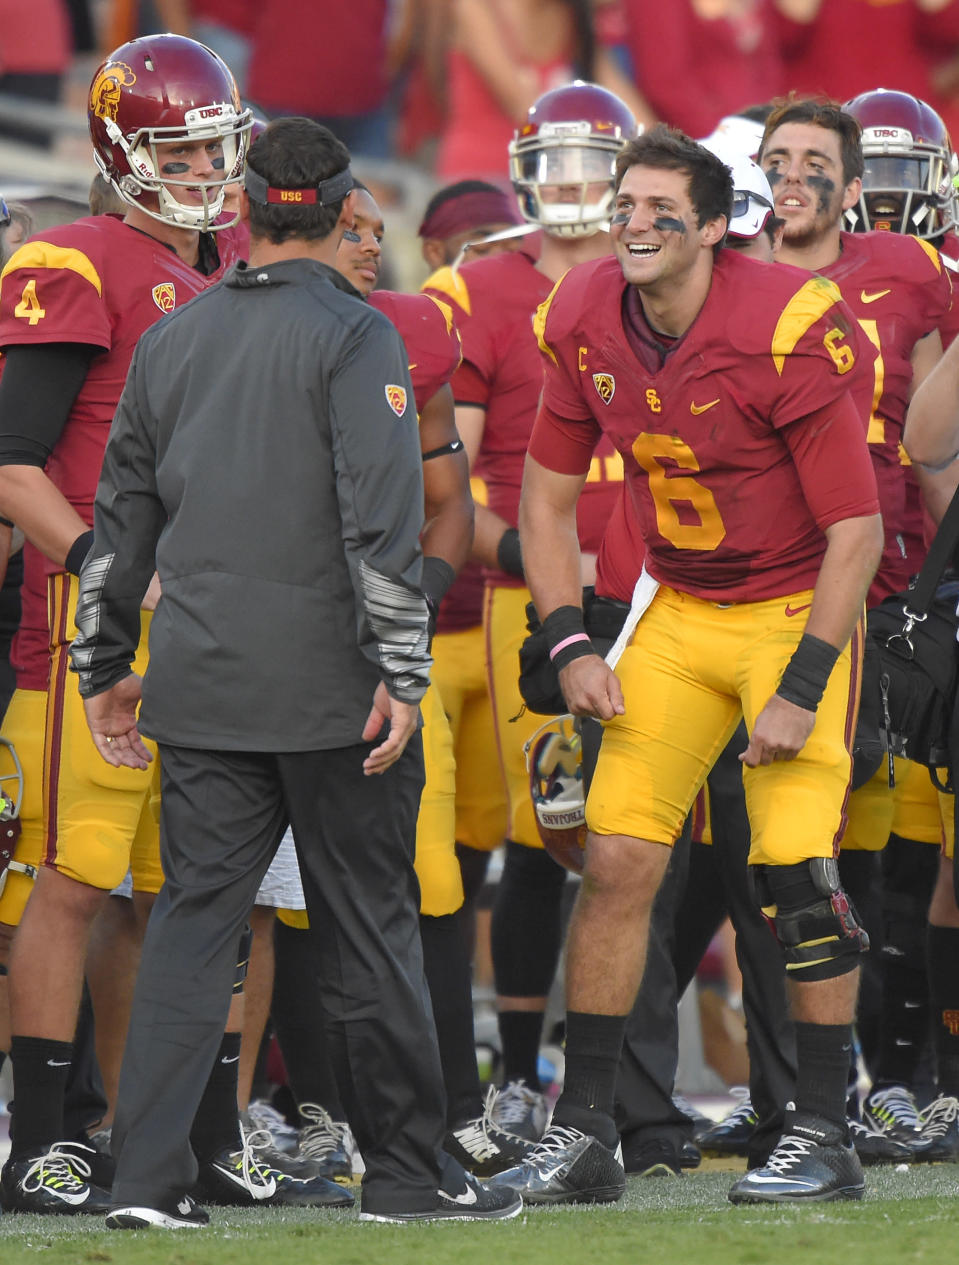 Southern California quarterback Cody Kessler, right, jokes with head coach Steve Sarkisian during the second half of an NCAA college football game against Notre Dame, Saturday, Nov. 29, 2014, in Los Angeles. Southern California won 49-14. (AP Photo/Mark J. Terrill)